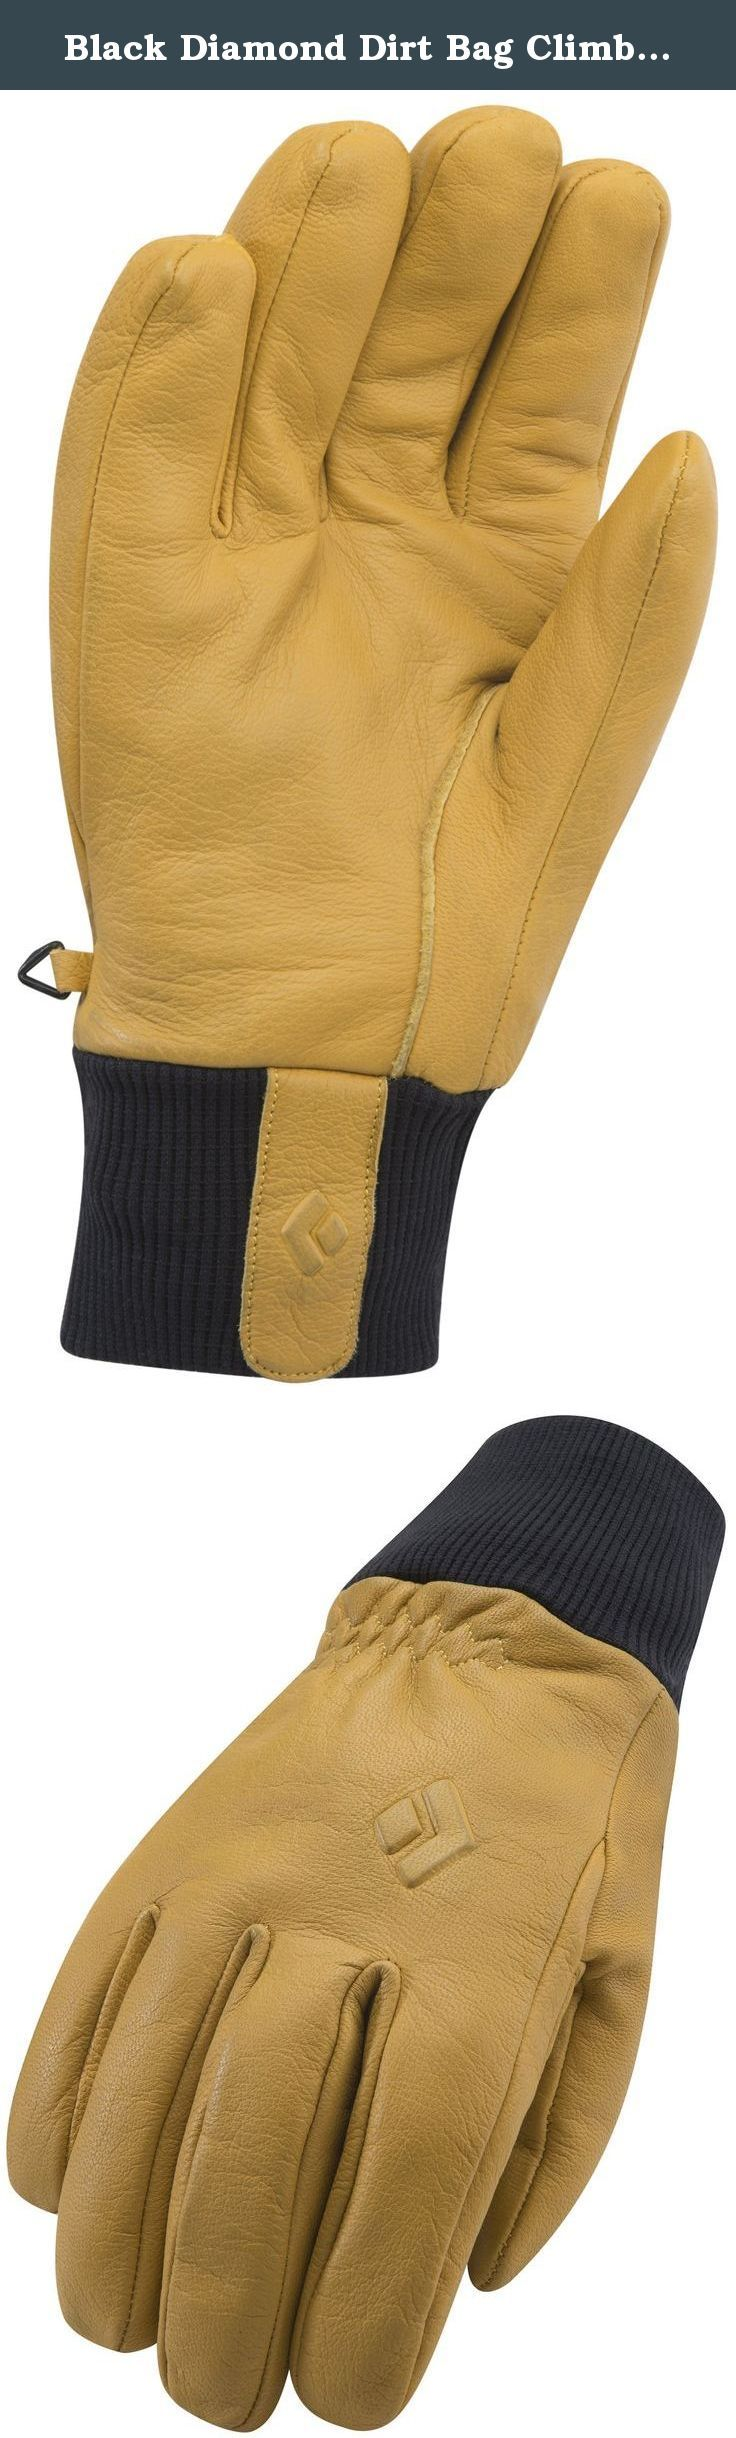 Black Diamond Dirt Bag Climbing Gloves, Natural, X-Large. Built for the dish-washing, lift-bumping, couch-surfing core, from Lake Tahoe to La Grave, the Dirt Bag merges the minimalist functionality of your favorite work glove with a warm, water-resistant and super-durable construction. The Dirt Bag's simple leather shell features a fixed fleece lining for added warmth, and a knitted cuff for a clean and comfortable under-the-cuff seal against snow.